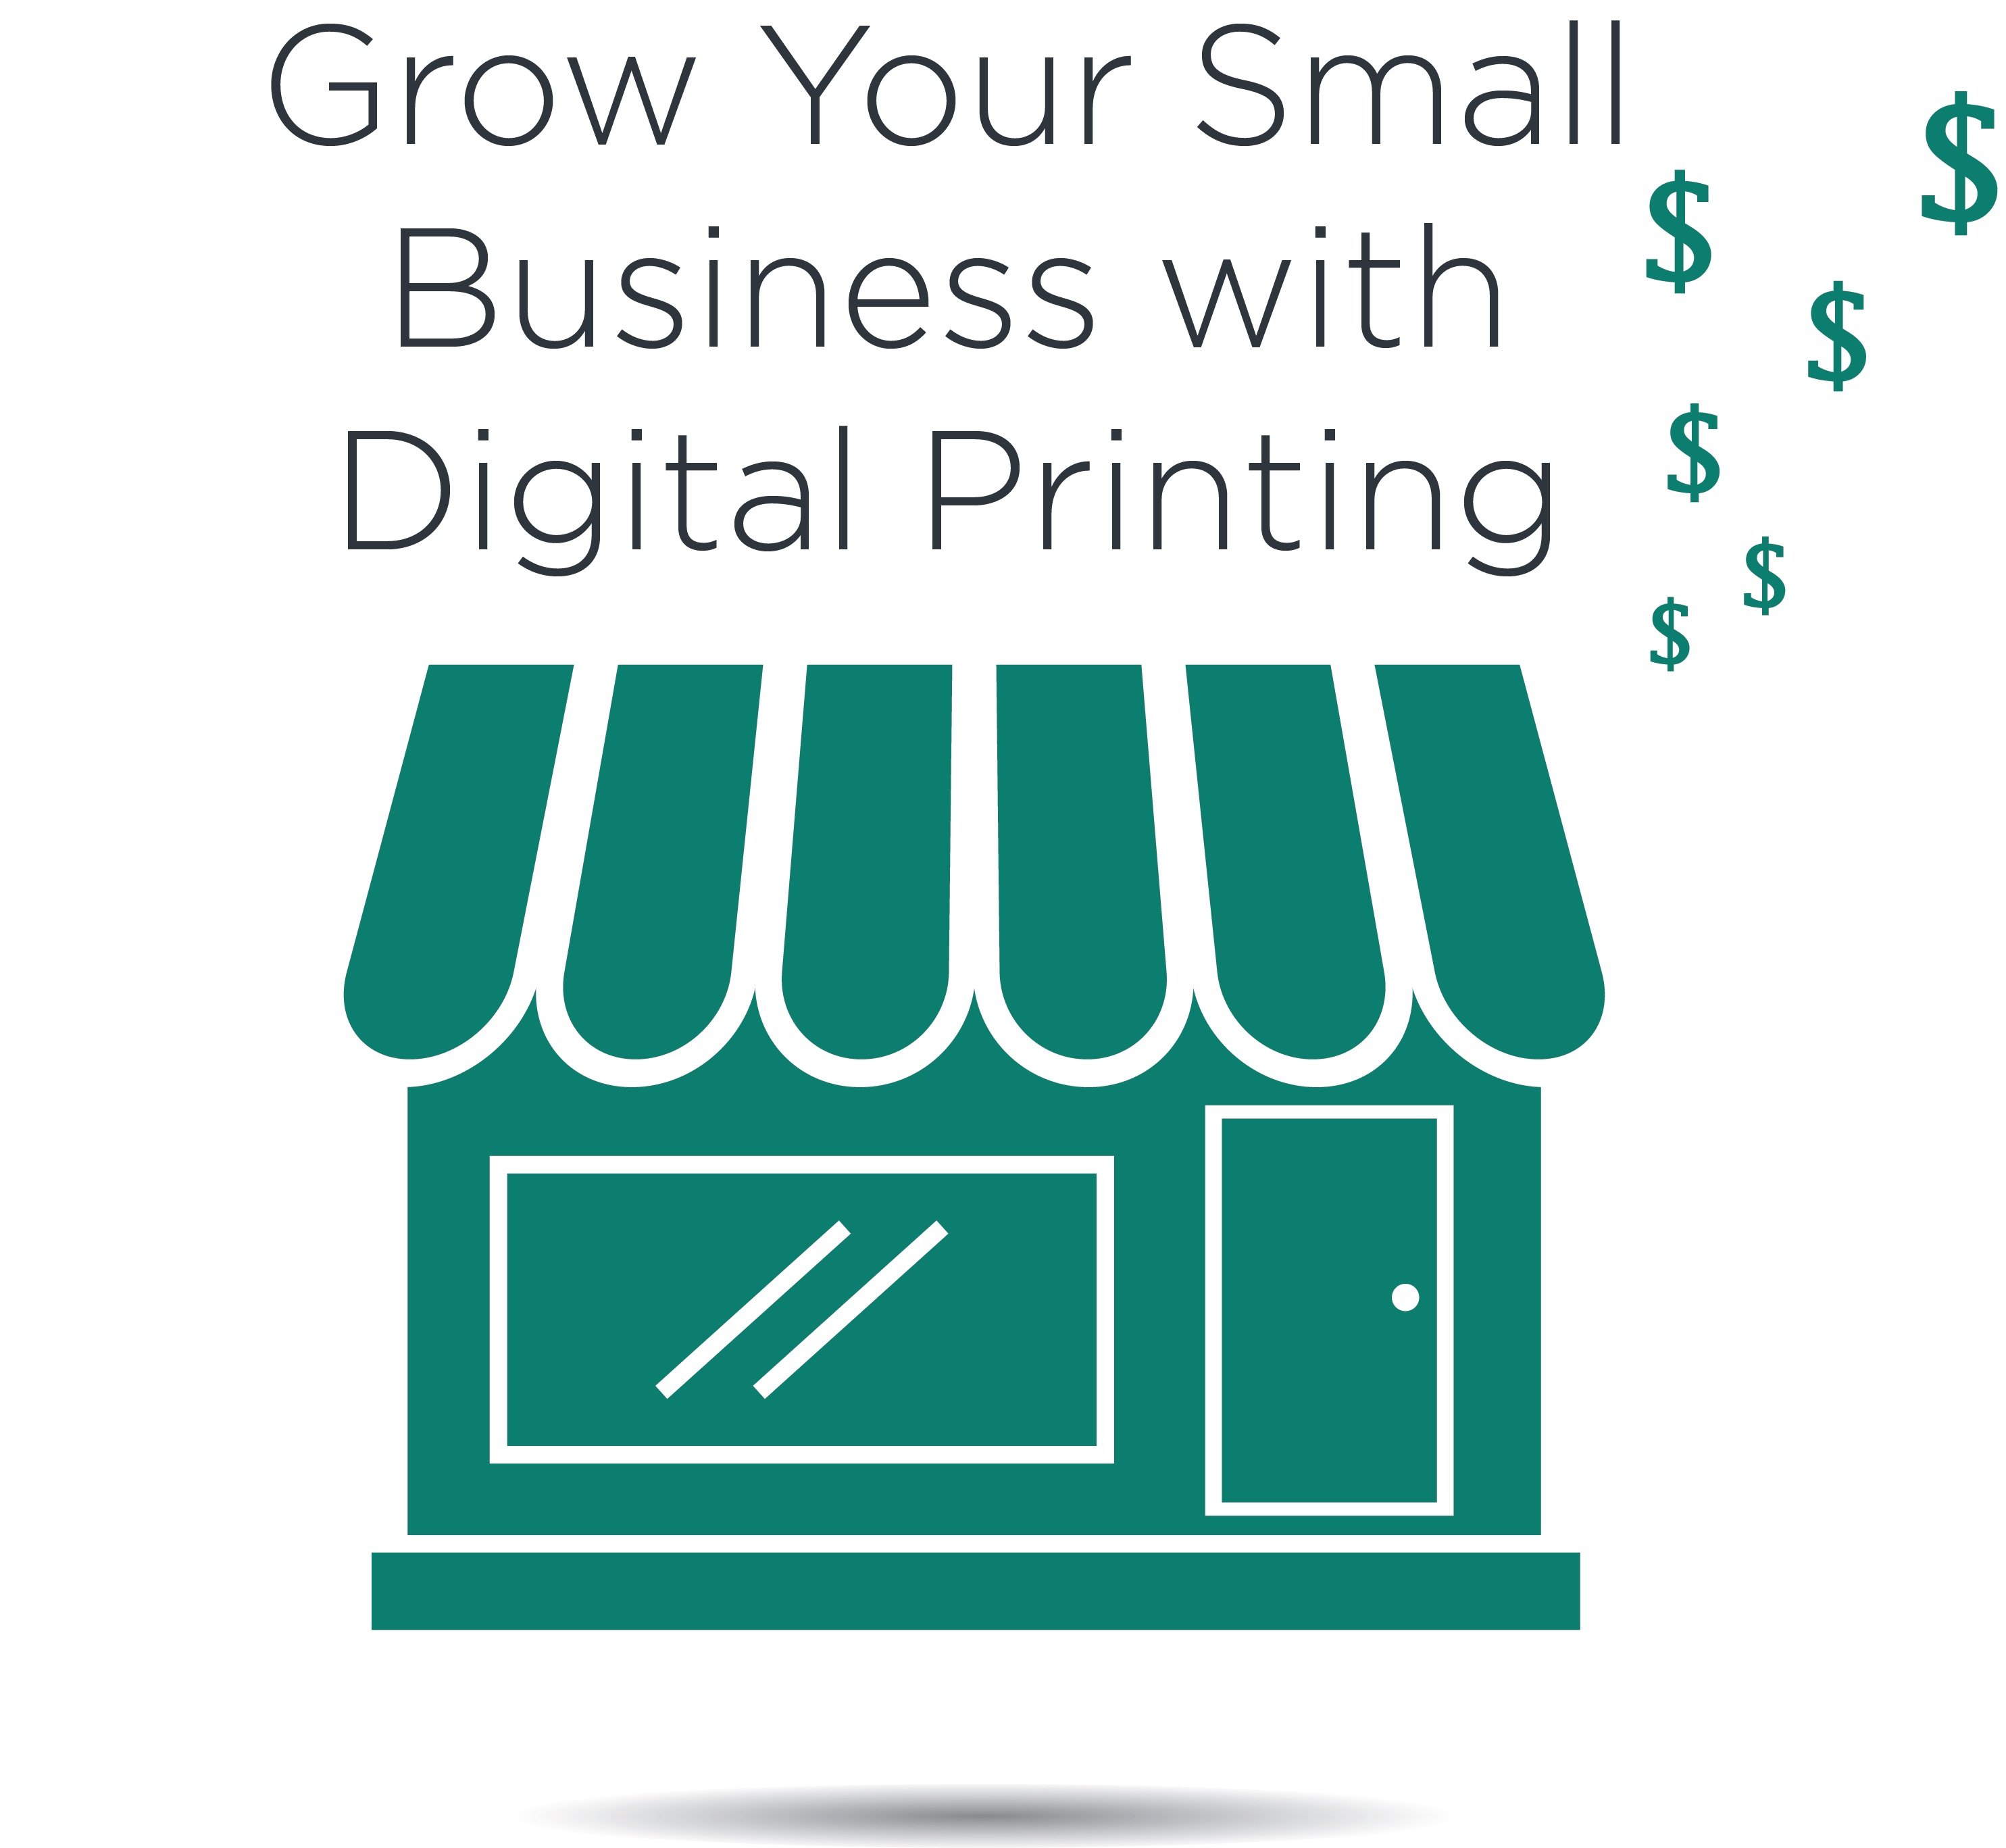 grow your small business with digital printing